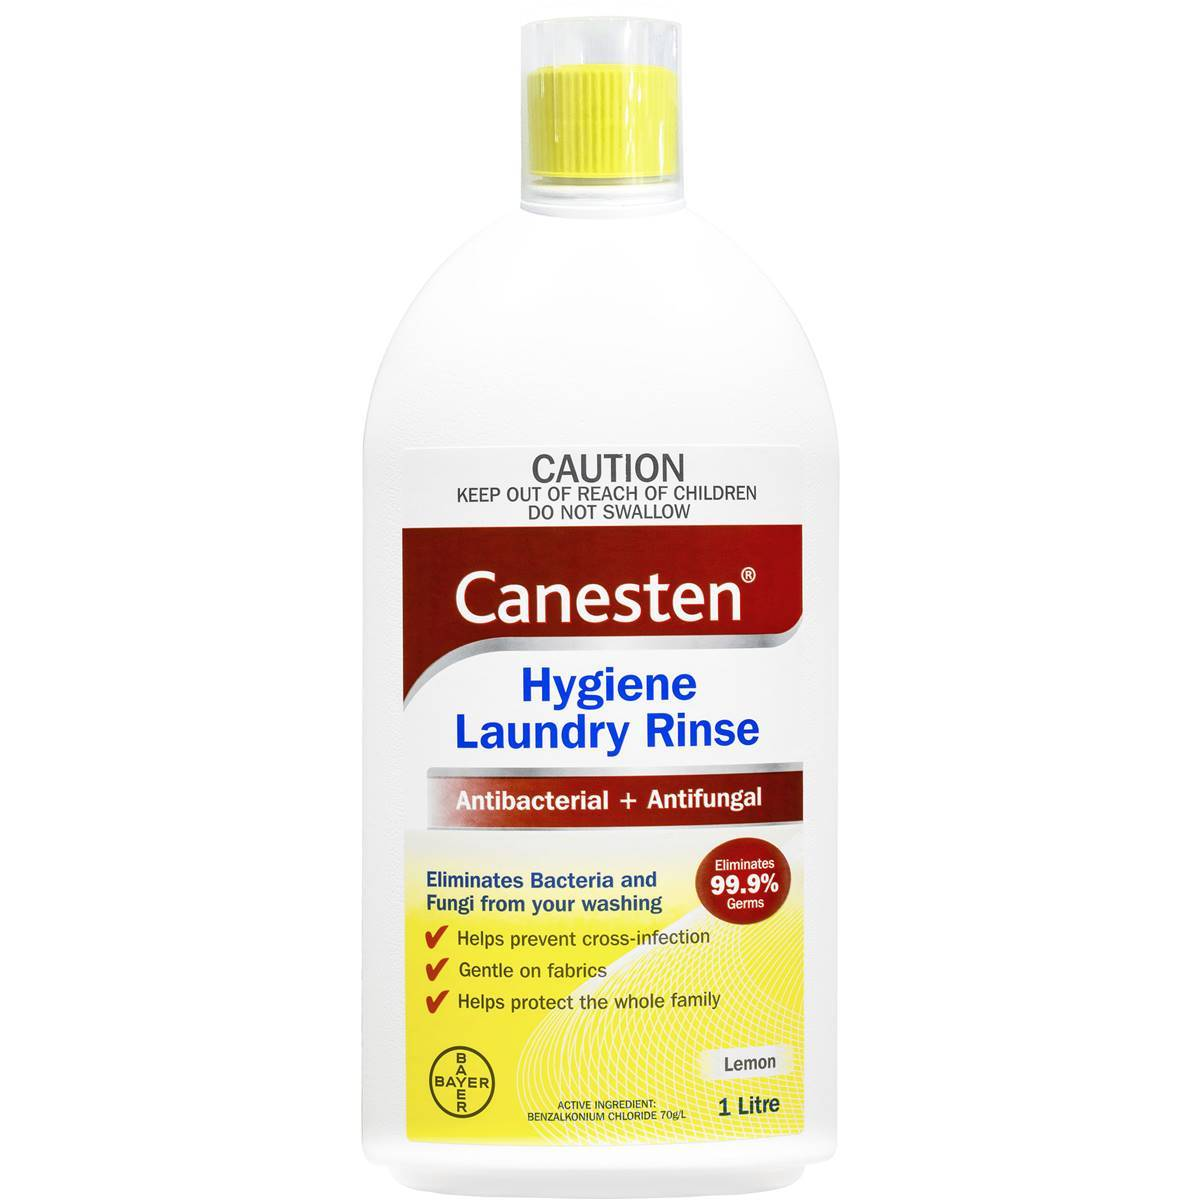 Canesten 1L Hygiene Laundry Rinse - Latest Living